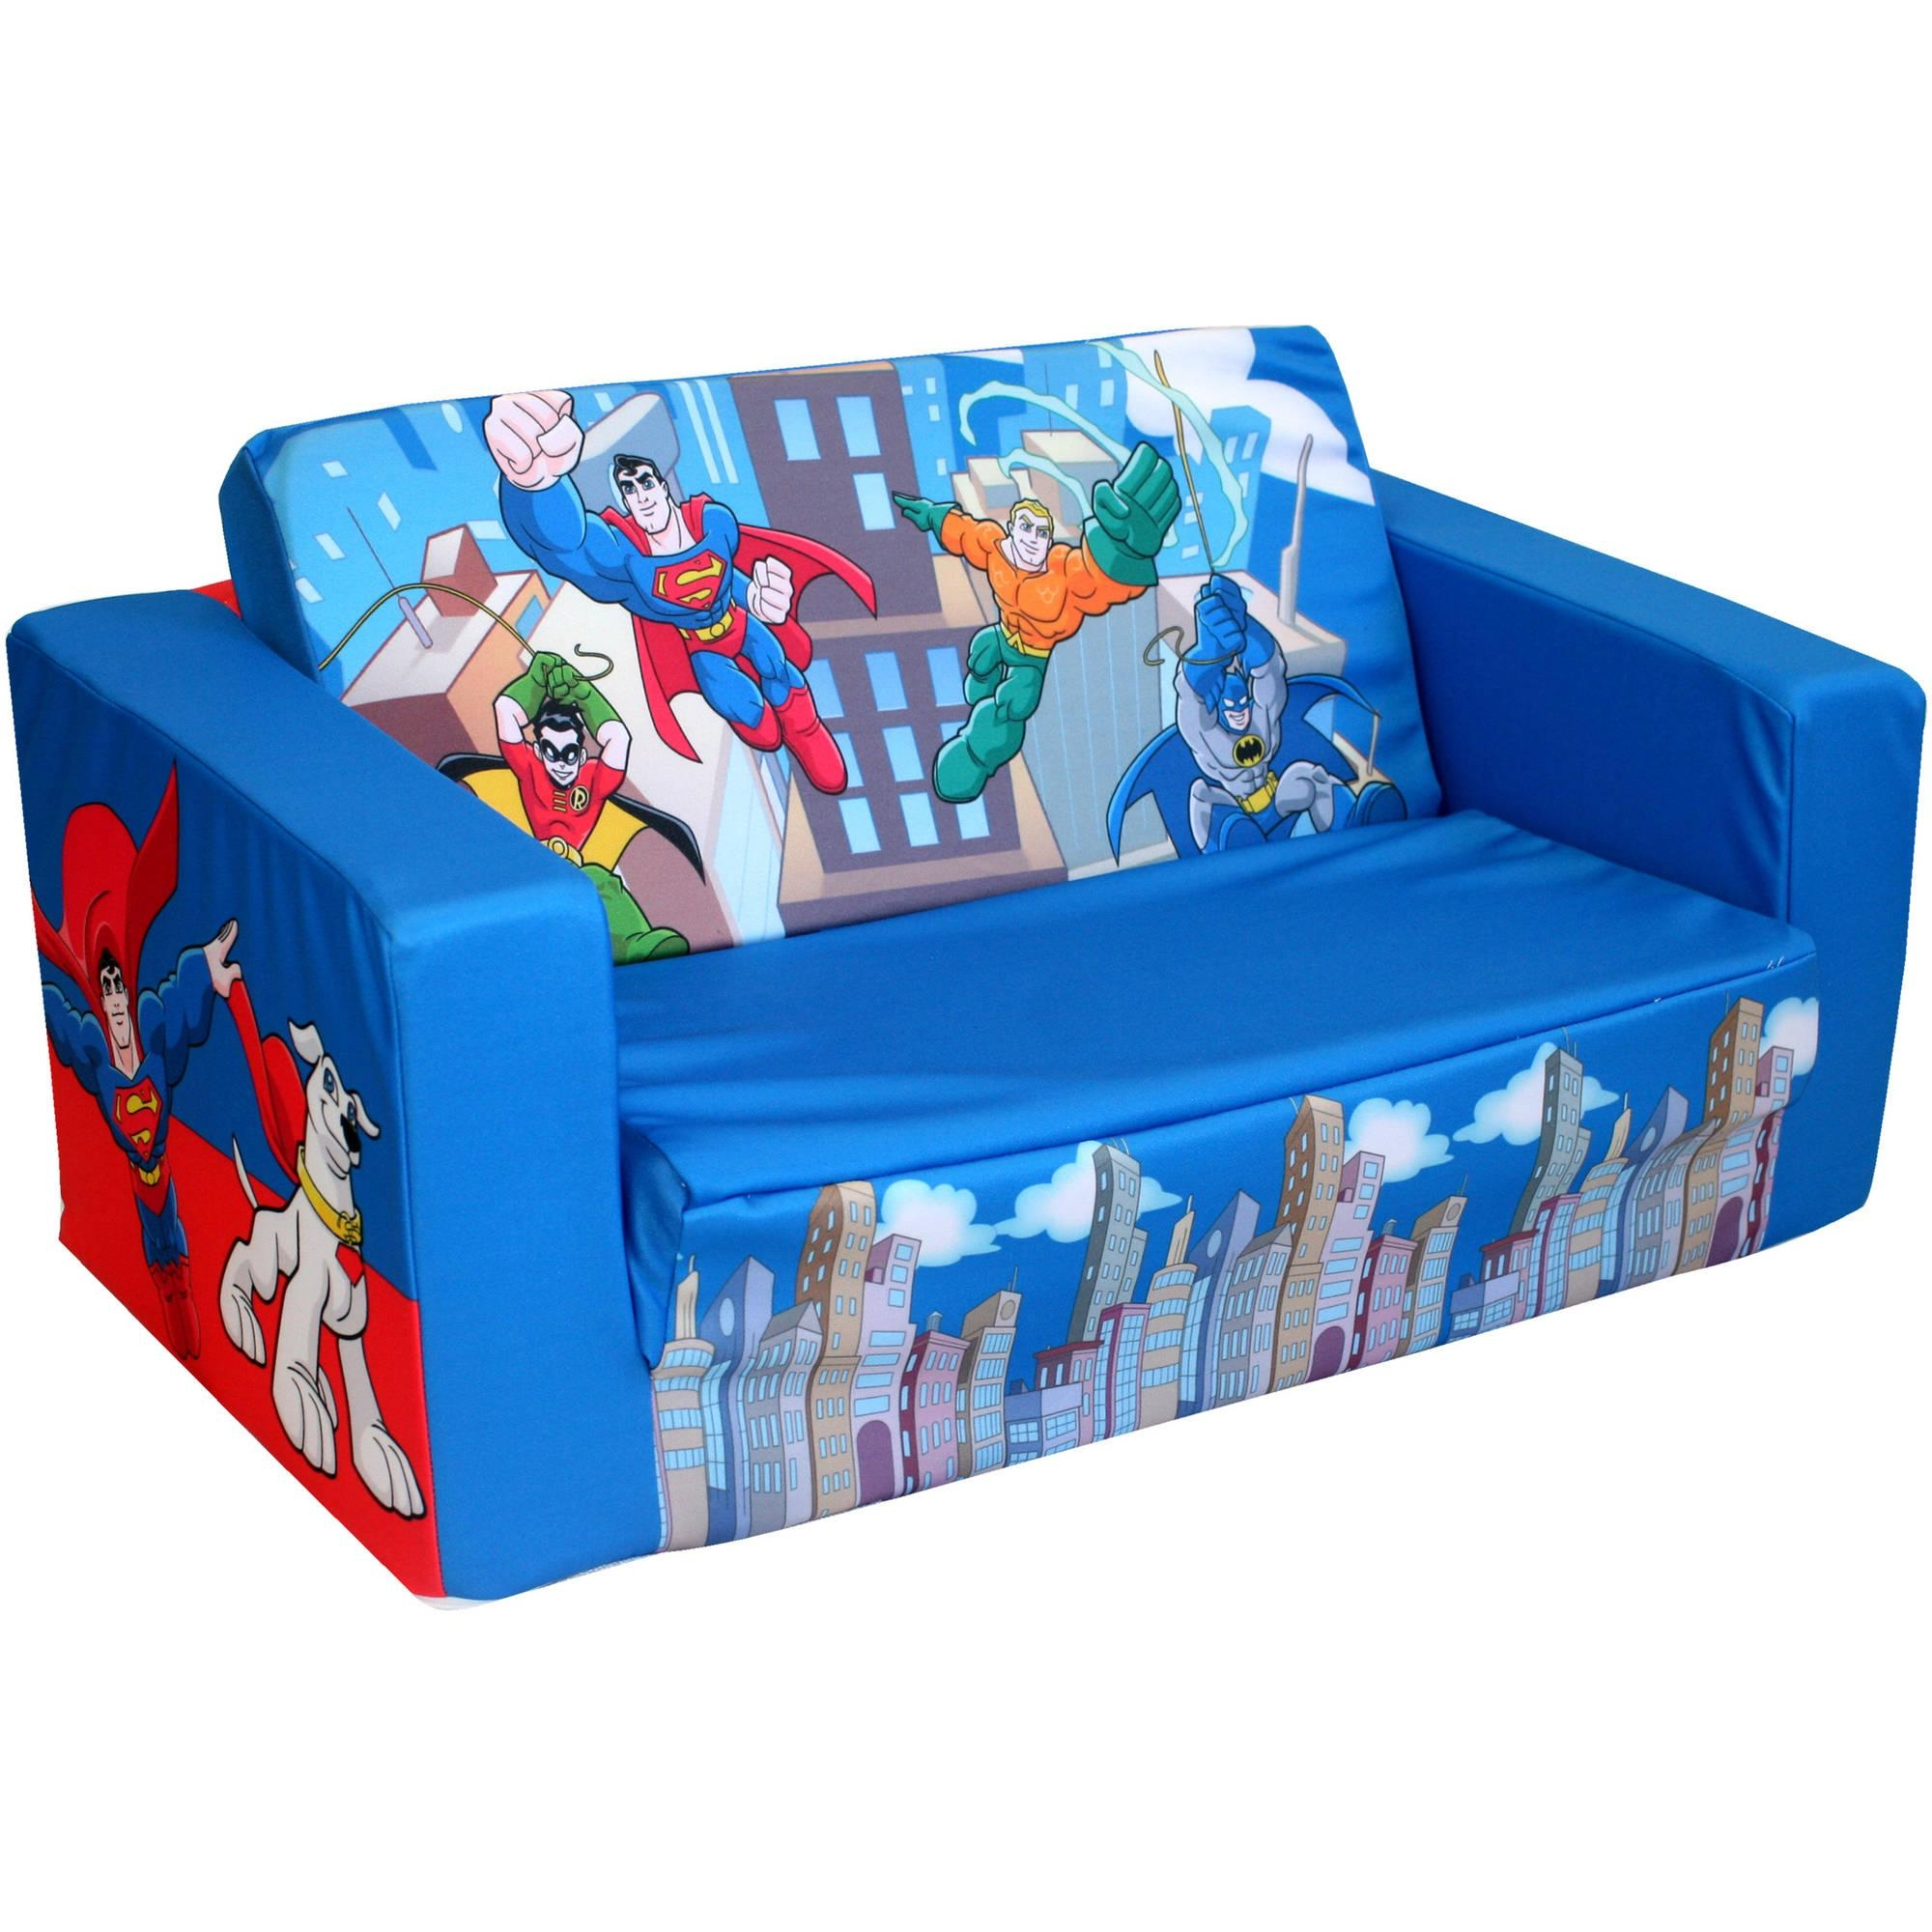 Sofas Center : Awesome Toddler Fold Out Sofa Pictures Concept Regarding Mickey Fold Out Couches (Image 13 of 20)